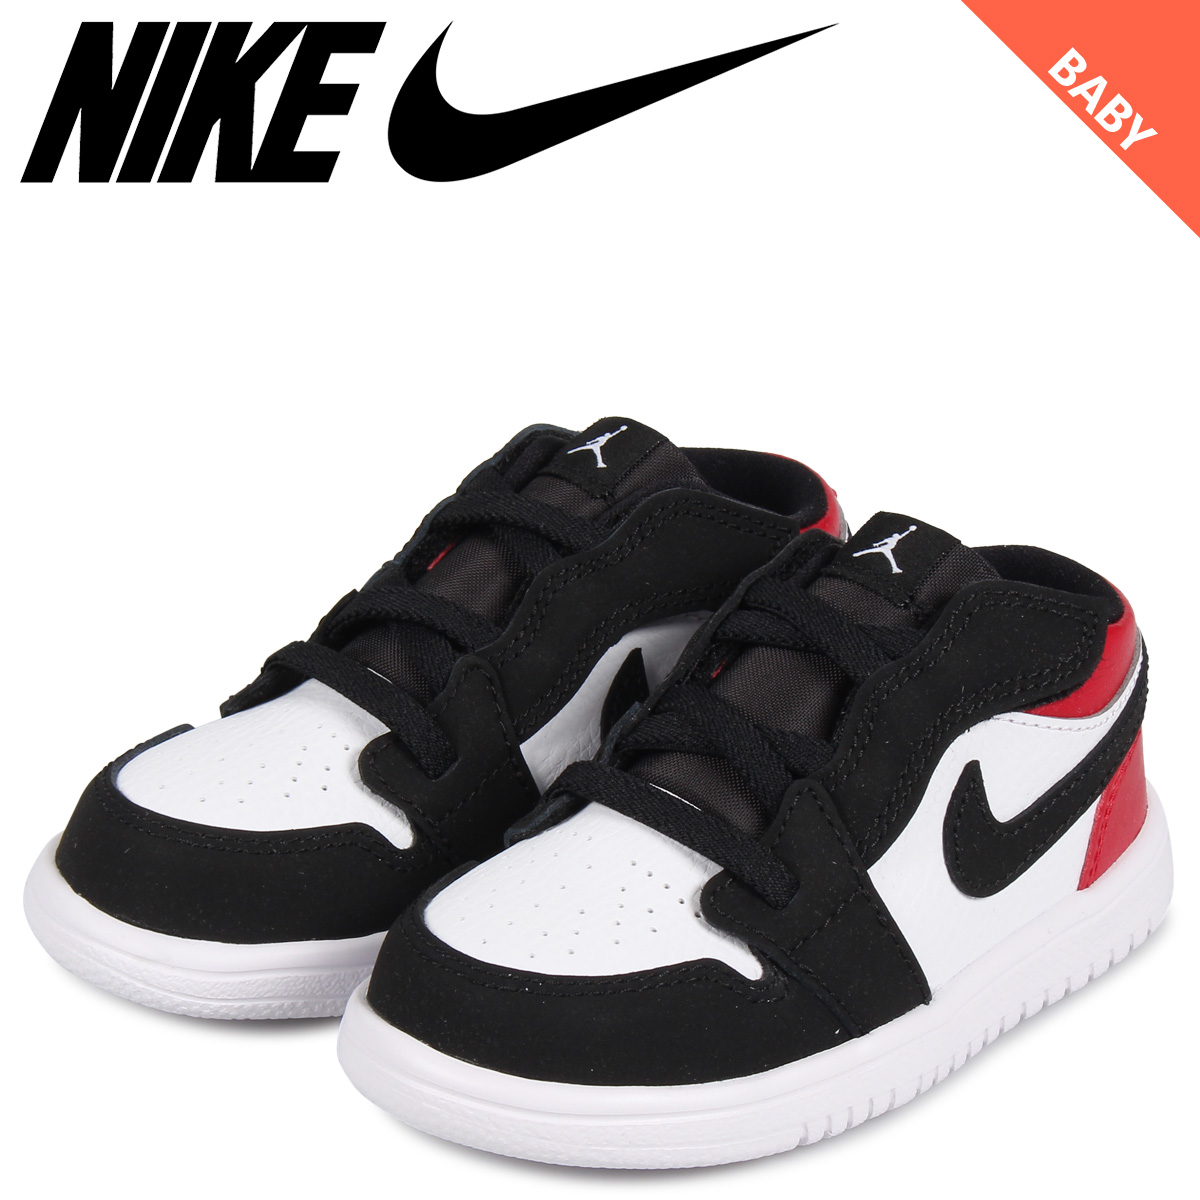 available meet many styles NIKE Nike Air Jordan 1 sneakers baby kids AIR JORDAN 1 LOW ALT TD white  white CI3436-116